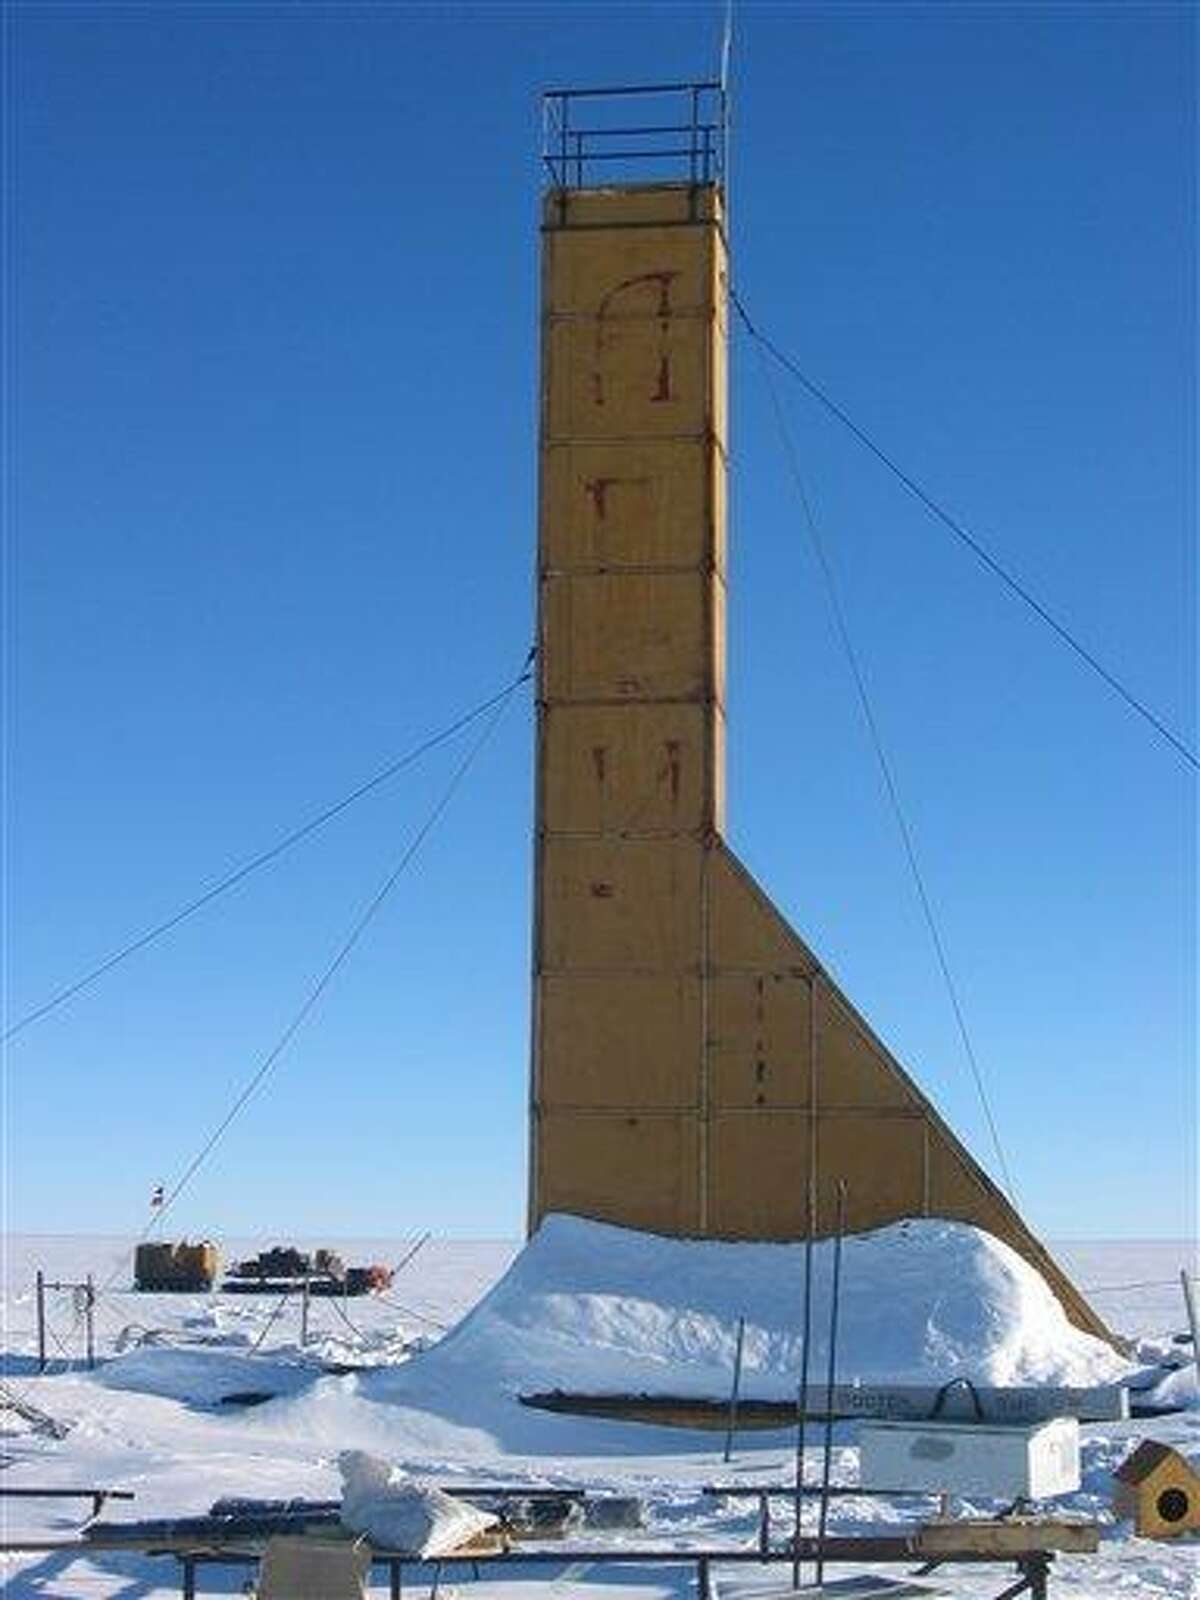 This Jan. 9, 2007 photo provided by the Arctic and Antarctic Research Institute of St. Petersburg shows the Russian drilling machine 5-G in Antarctica. The research institute said Wednesday it has reached Lake Vostok, Antarctica's largest icebound freshwater lake, which has been sealed off for millions of years, after more than two decades of drilling. The breakthrough has been eagerly anticipated by scientists who hope to find virgin clues about the progenitors of life on earth and other planets. Associated Press